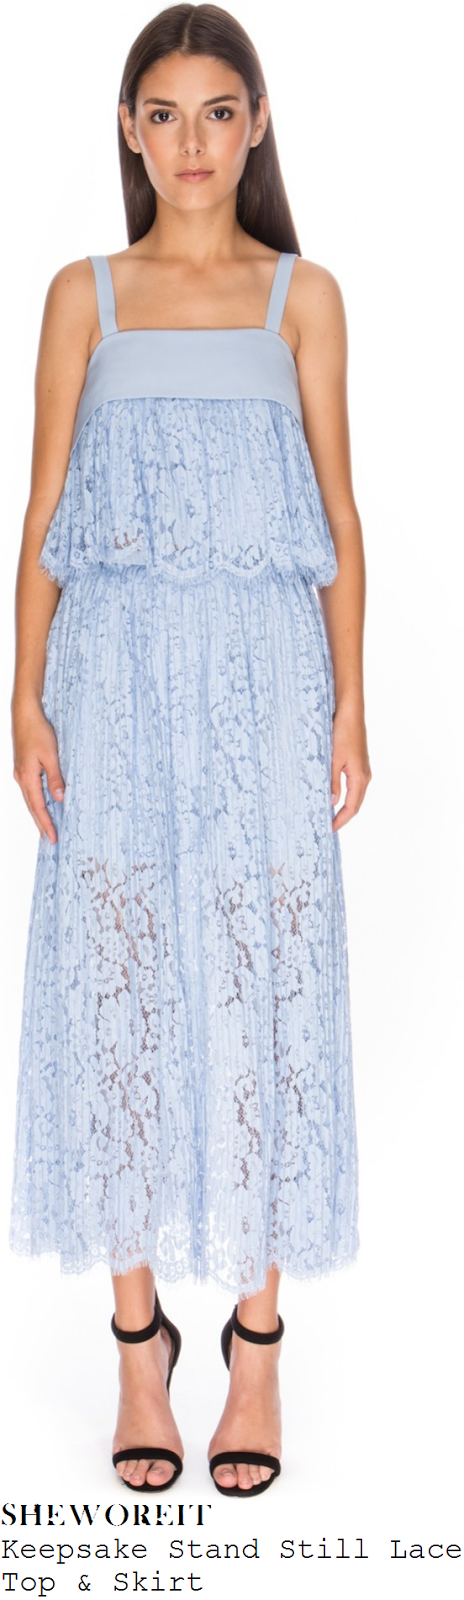 danielle-lloyd-keepsake-stand-still-light-blue-floral-lace-crop-top-and-maxi-skirt-co-ords